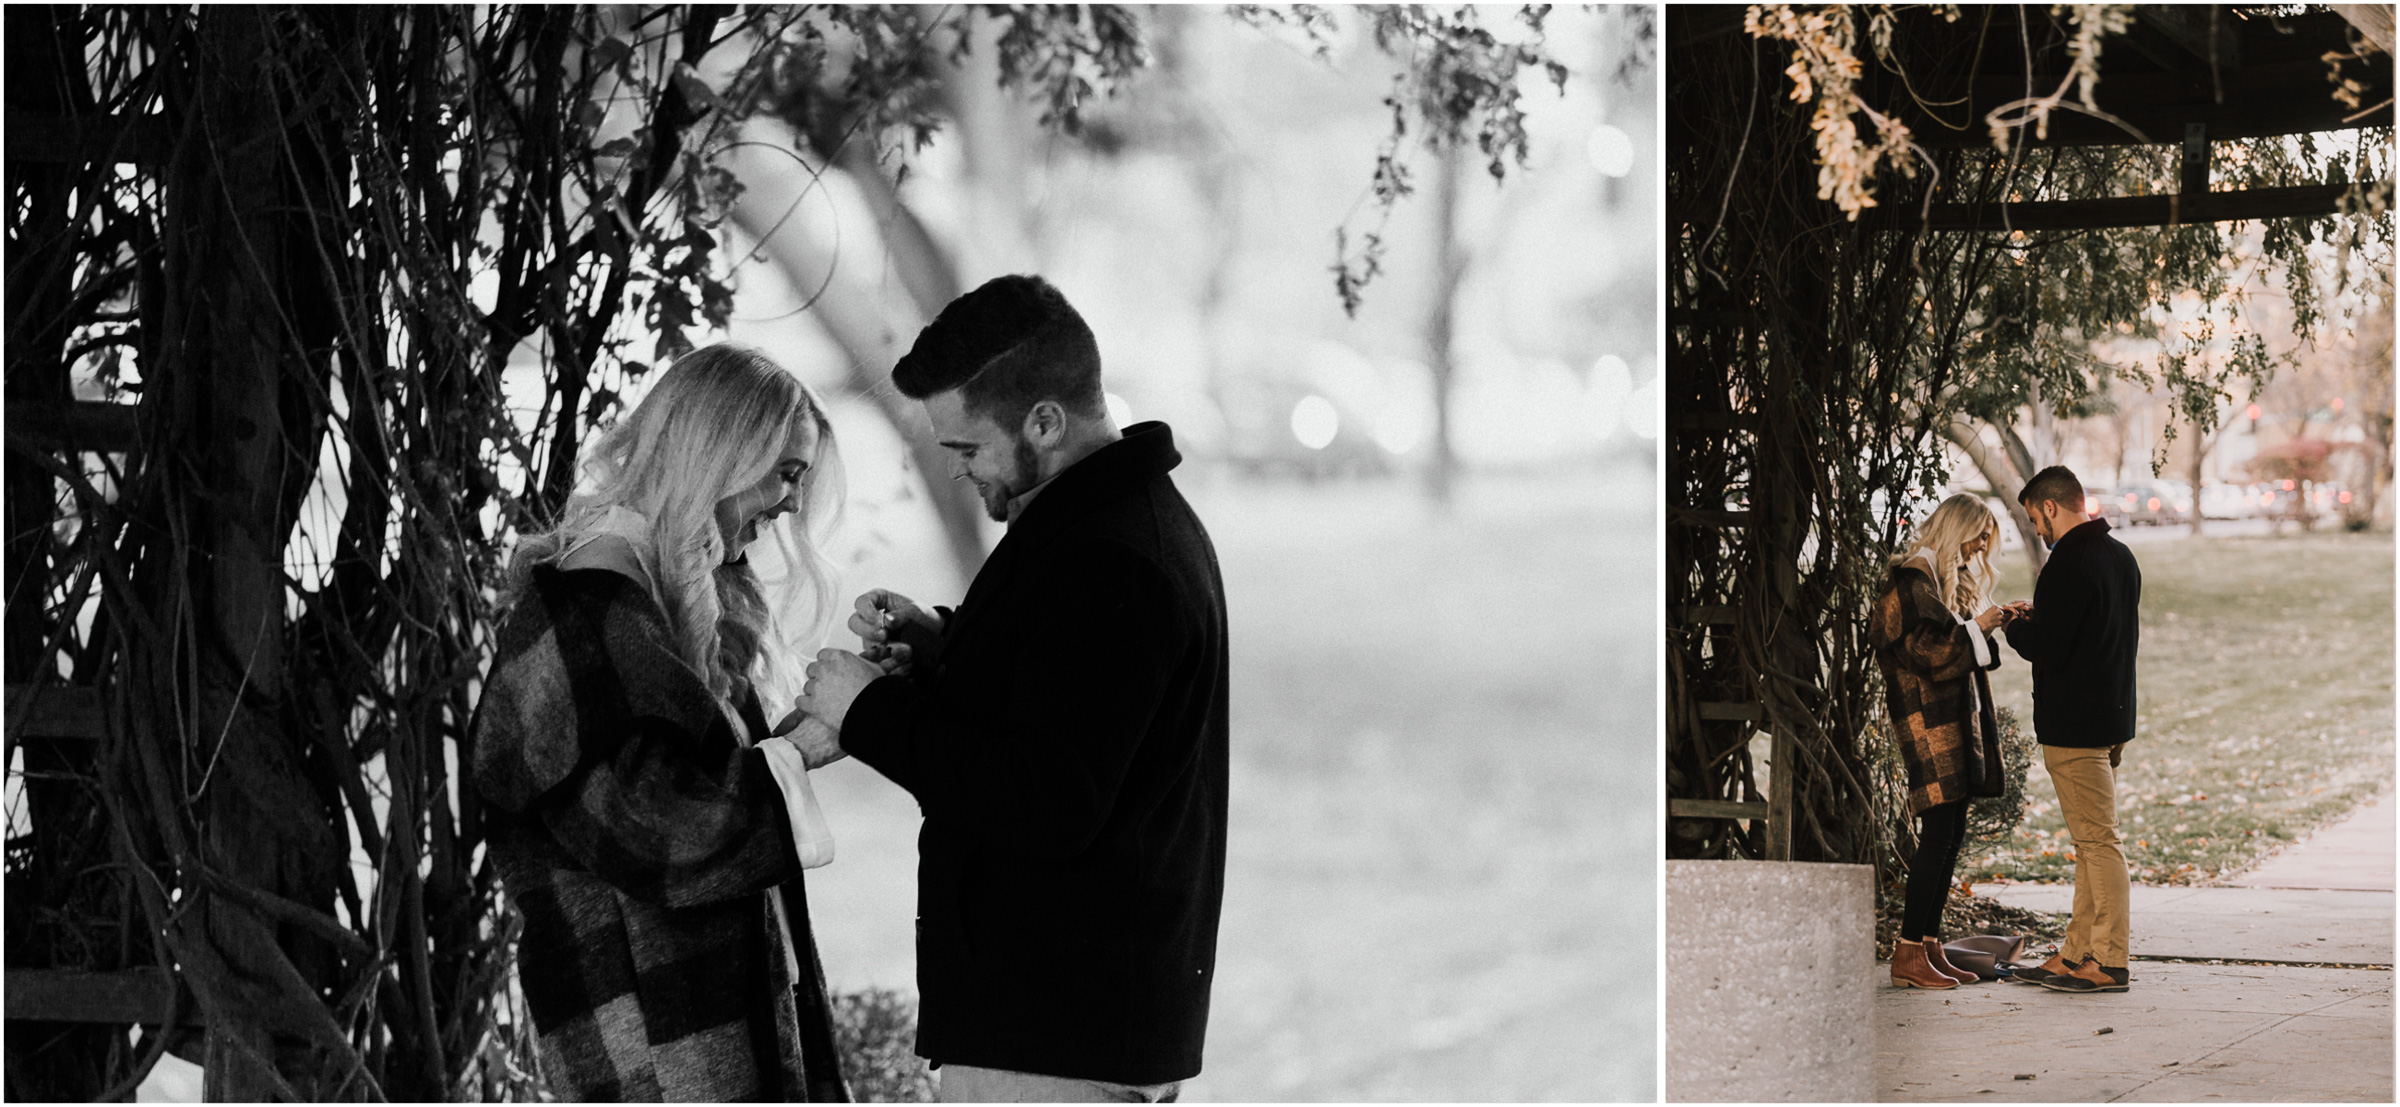 alyssa barletter photography proposal country club plaza park fall engagement how he asked she said yes-3.jpg